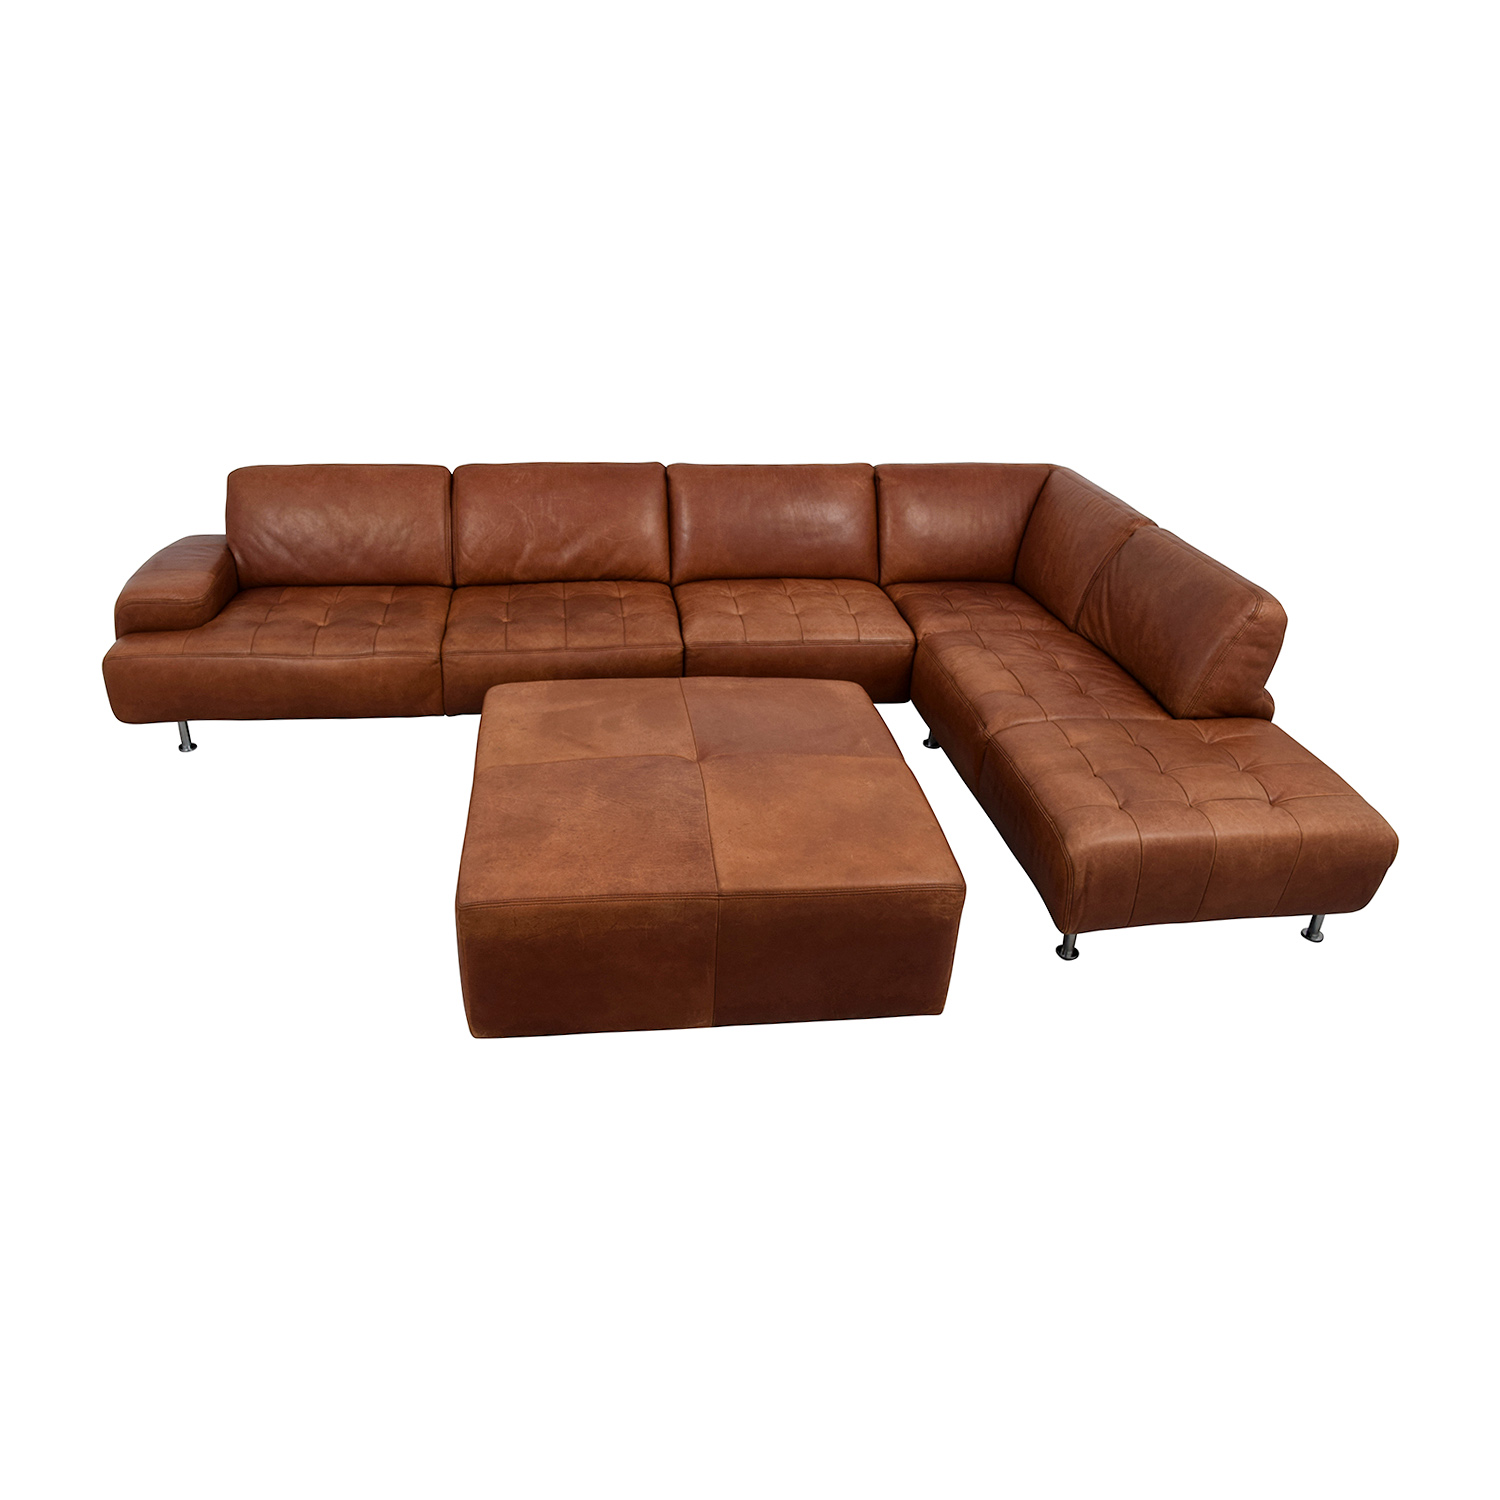 W. Schillig W. Schillig Leather Sectional with Ottoman dimensions